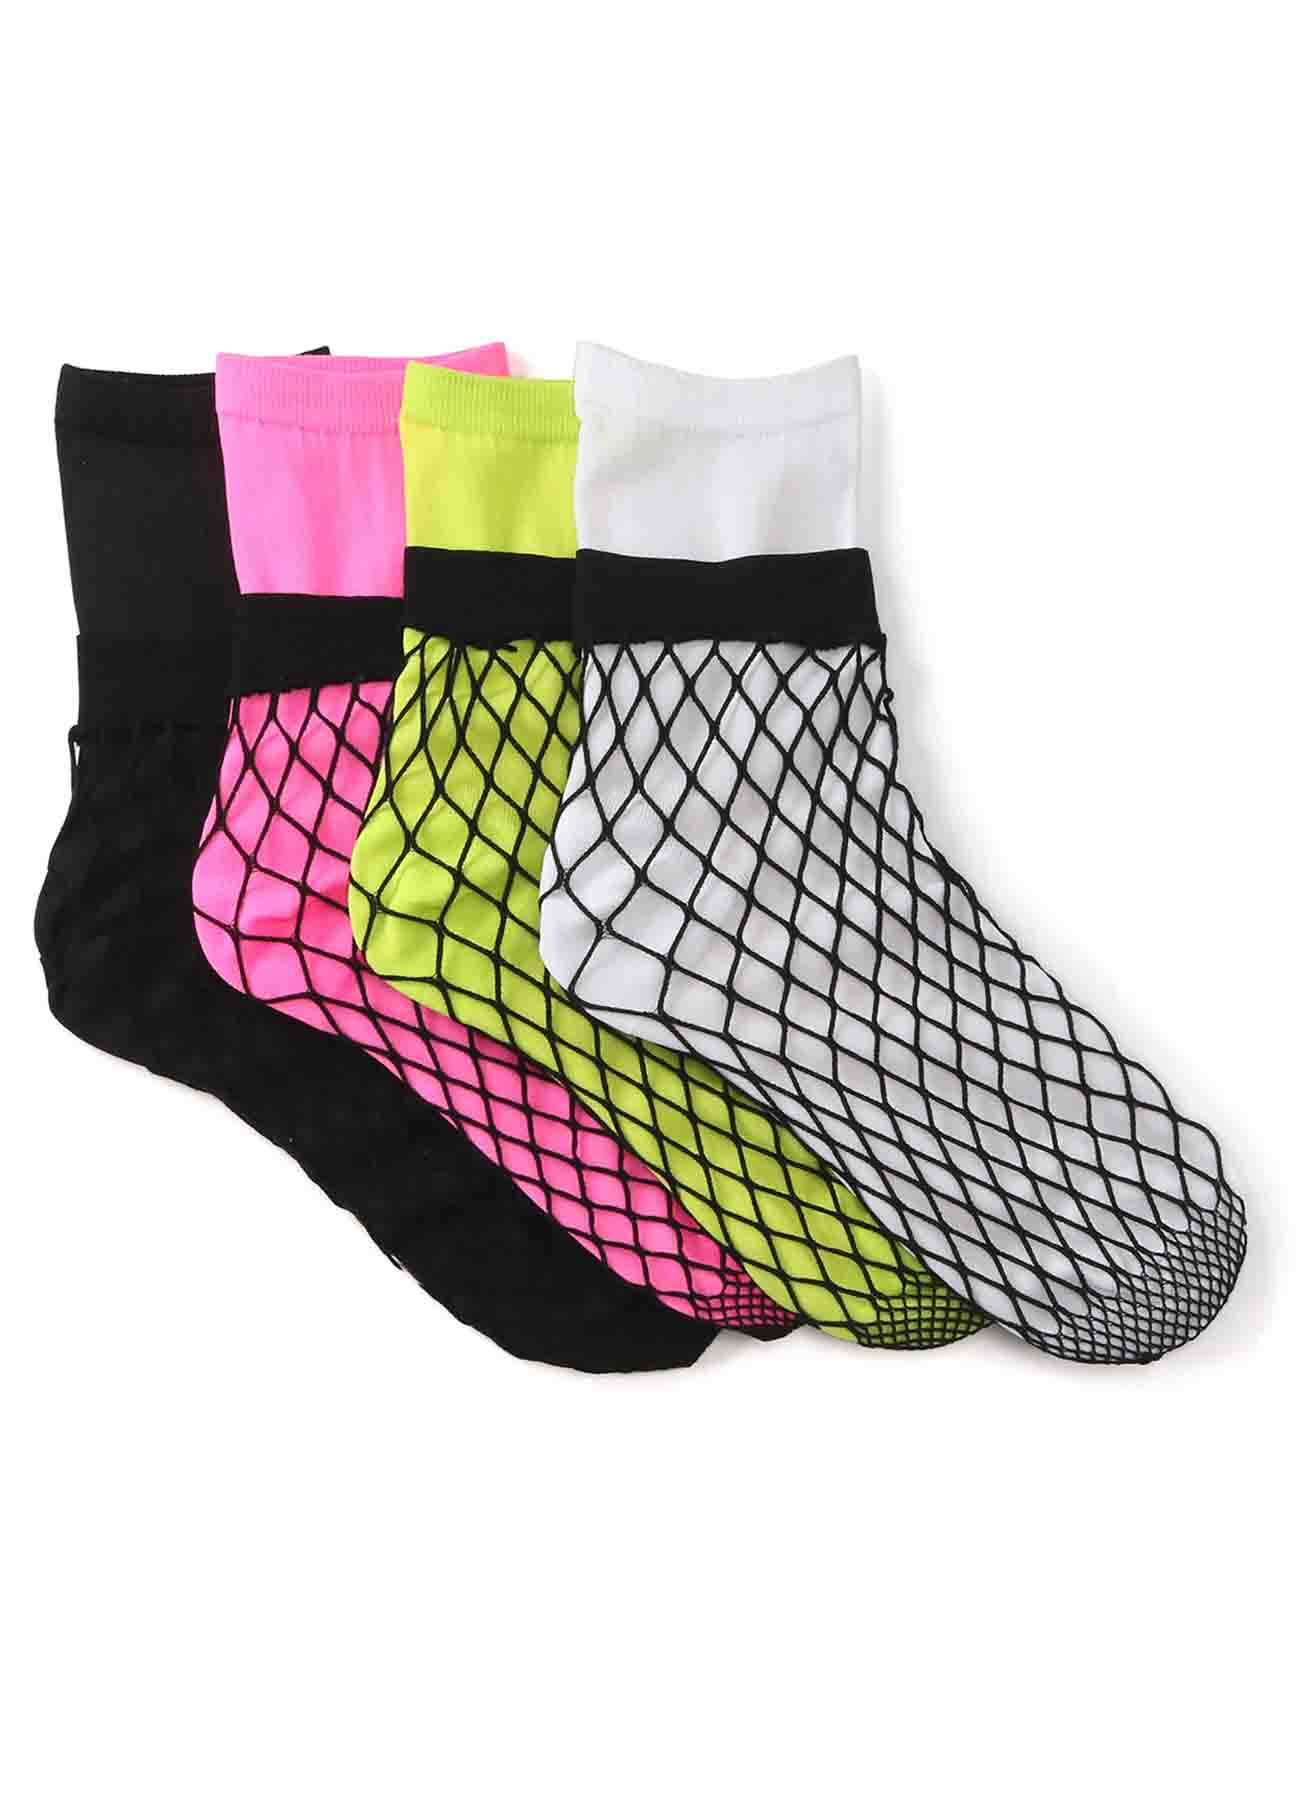 Ny/Pu Yarn Net Layered Socks